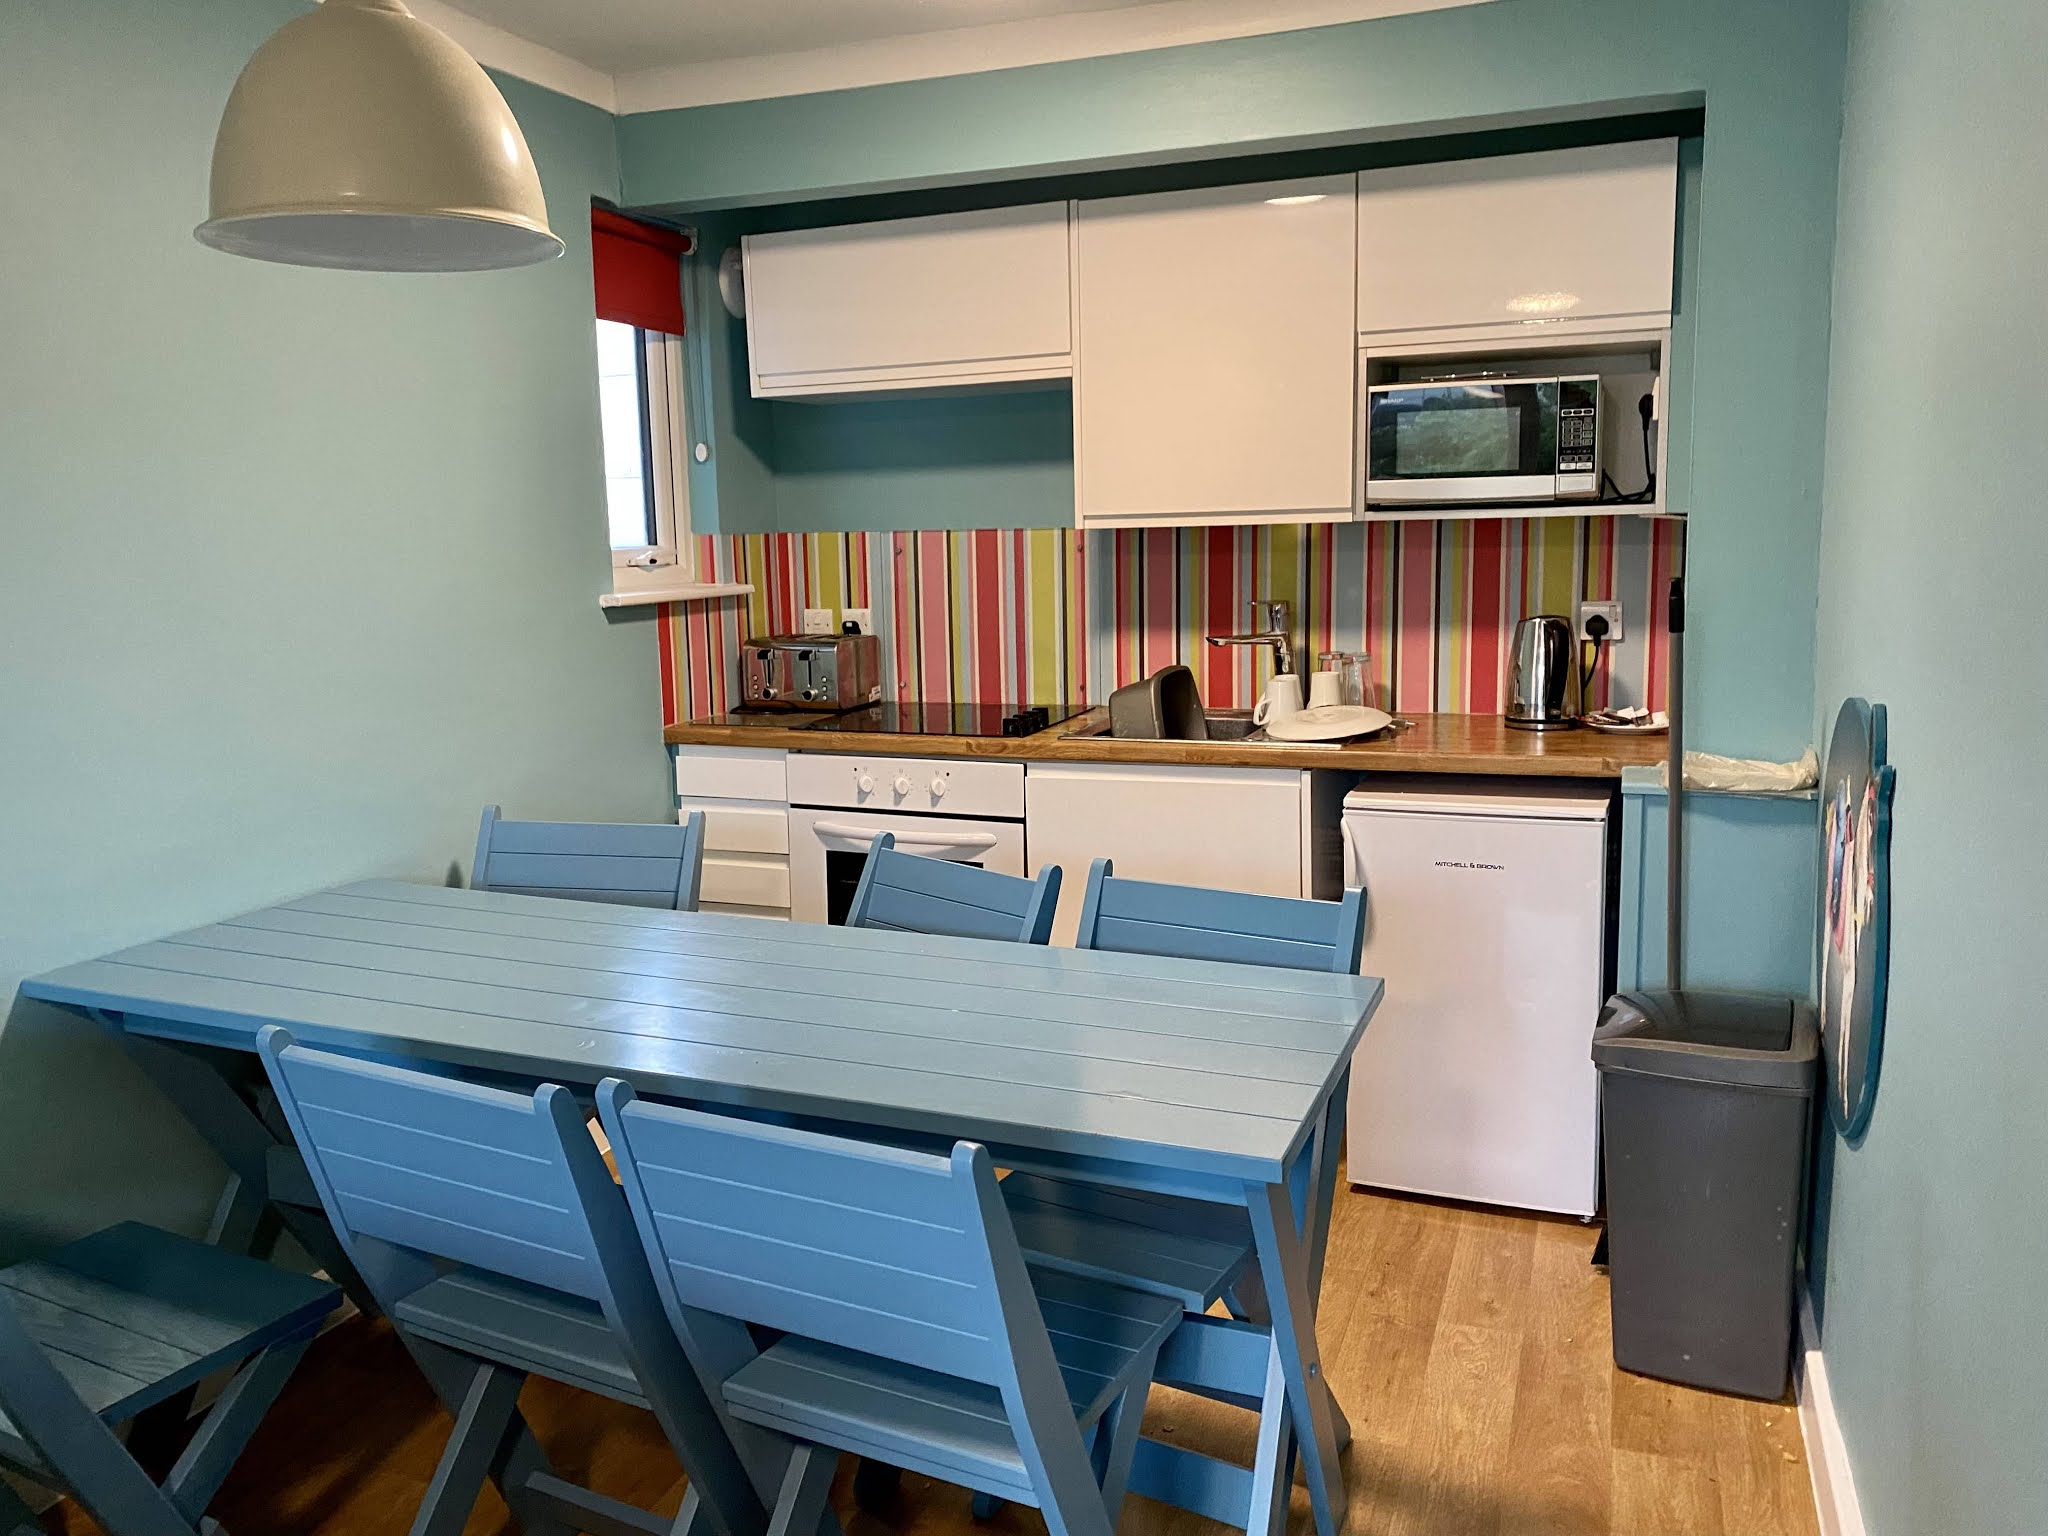 The kitchen and dining room at Butlin's is basic and you need to pack a few extras